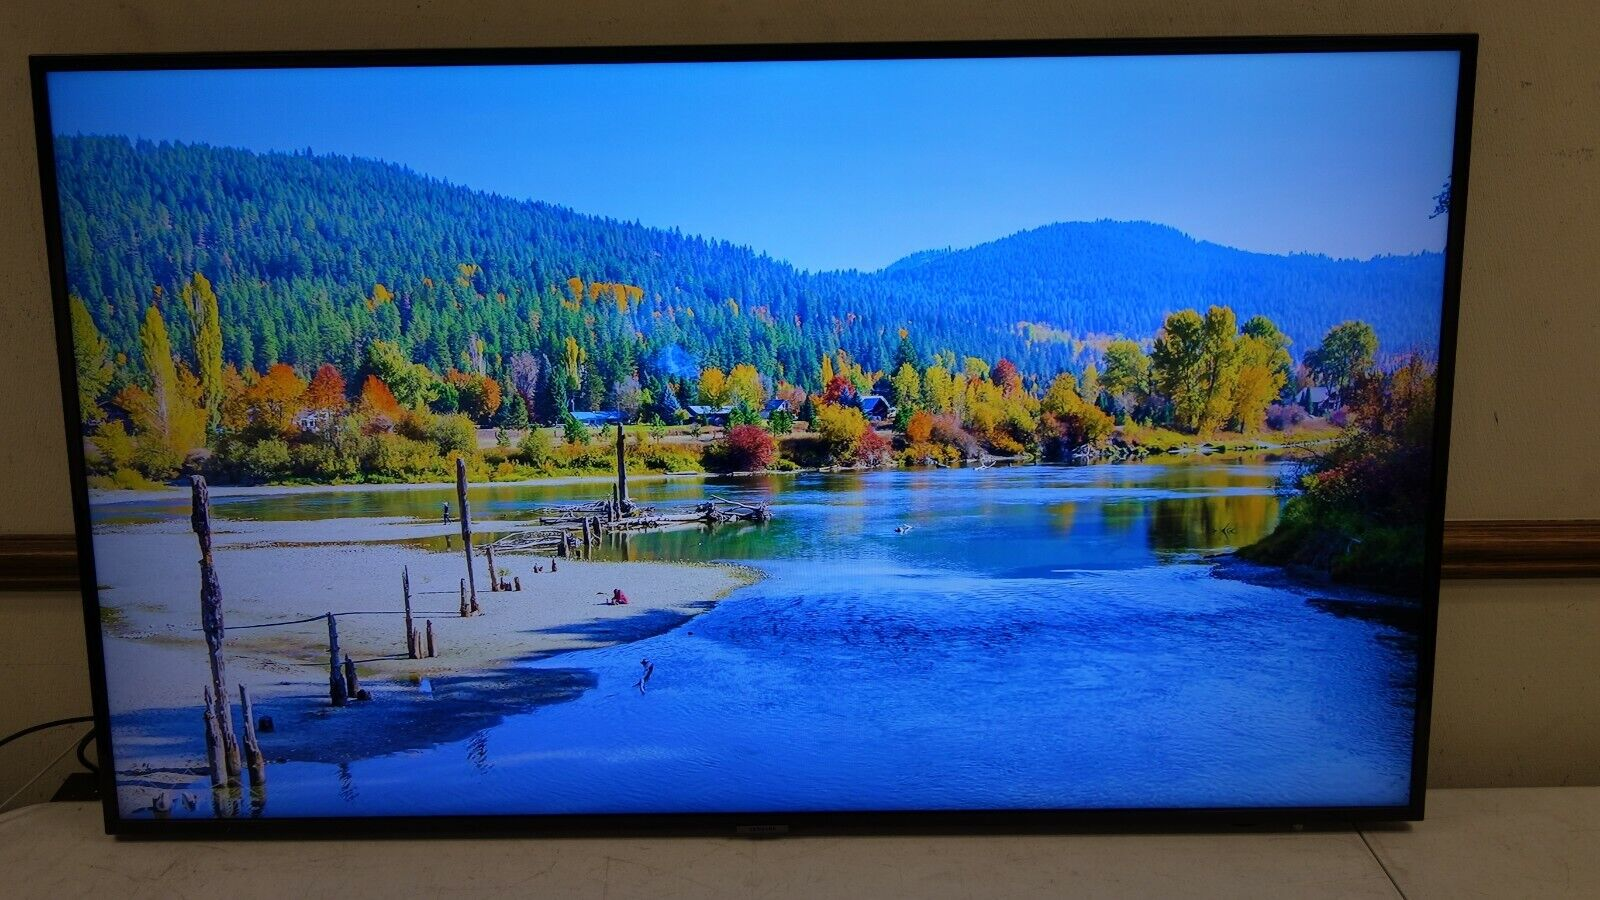 Samsung - 50 Class 6 Series LED 4K UHD Smart Tizen TV (AR51). Available Now for 289.99